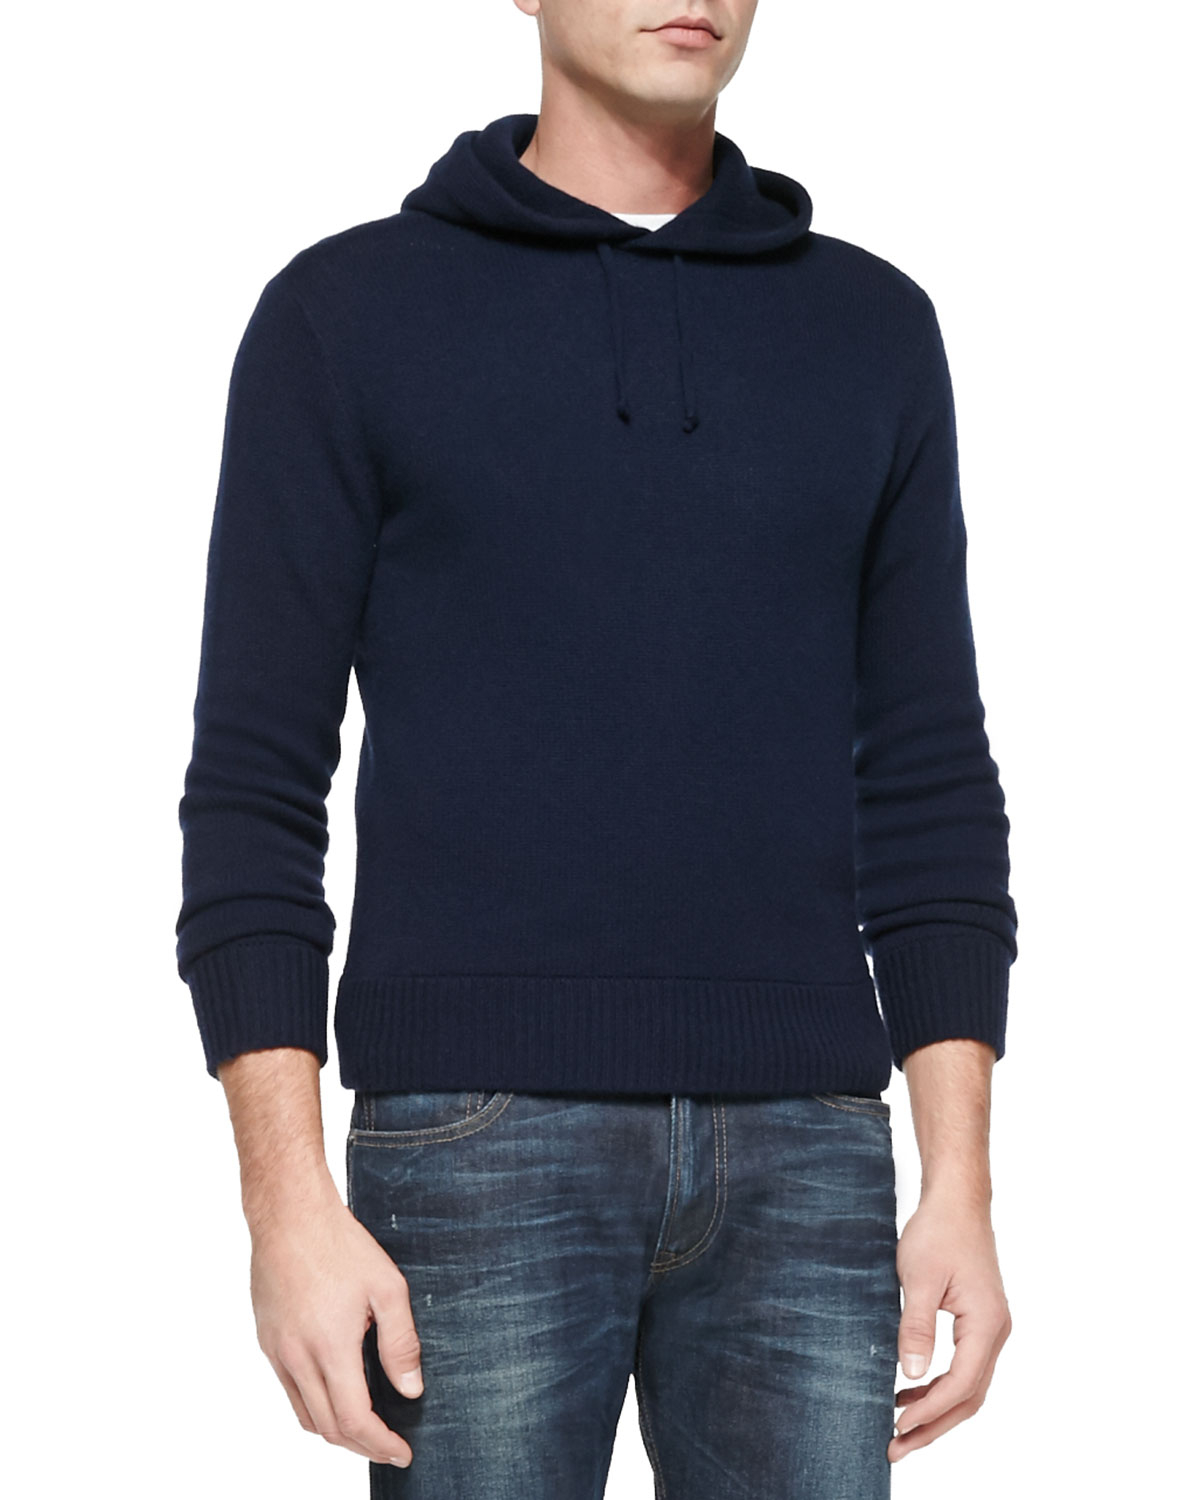 Ralph lauren black label Cashmere Hooded Sweater in Blue for Men ...